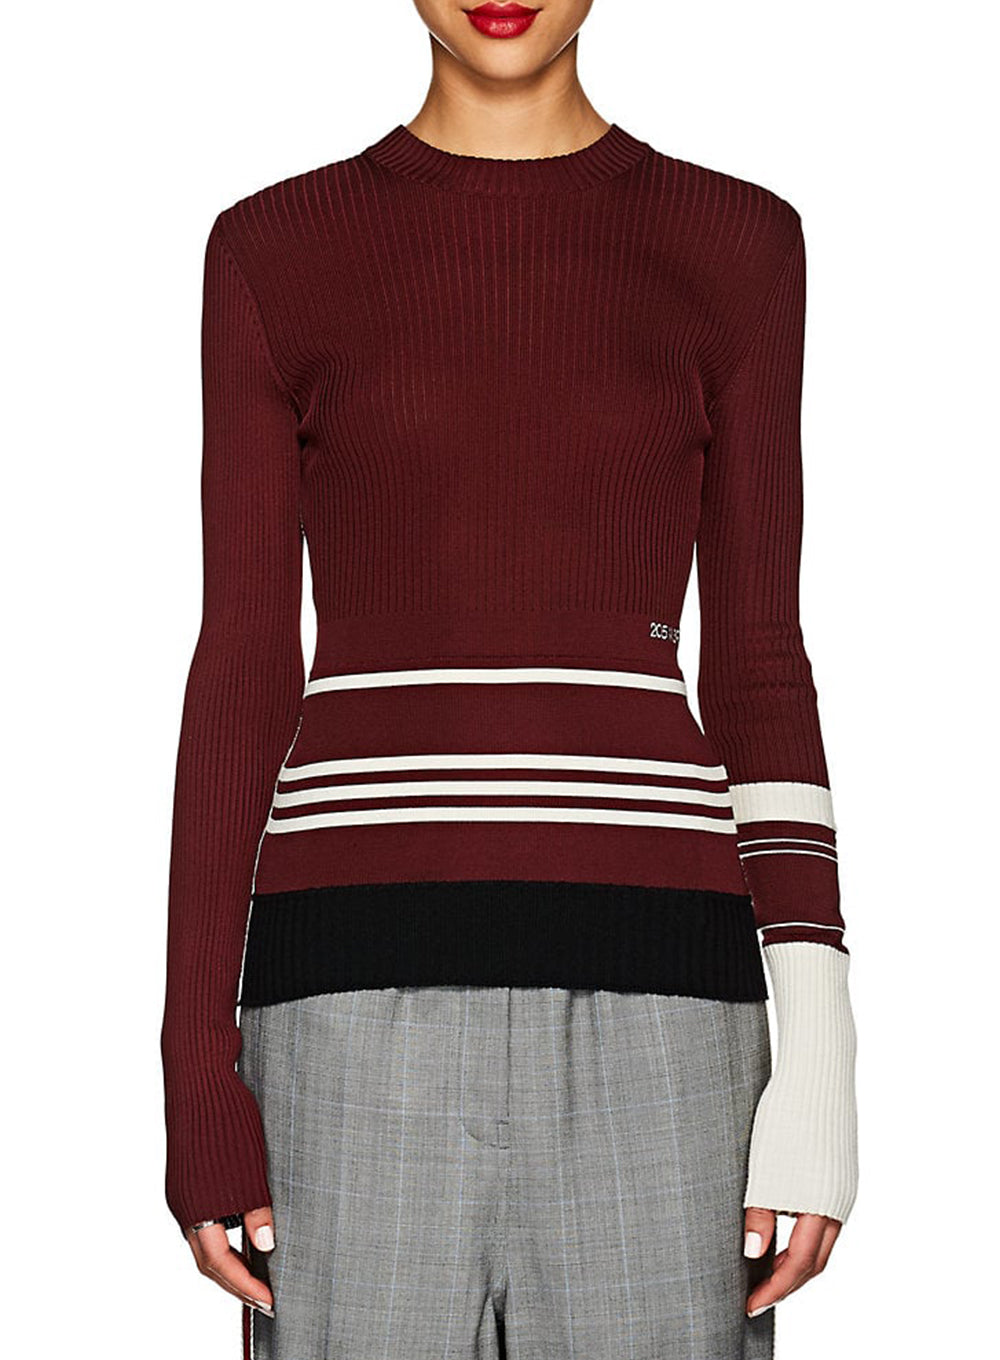 CALVIN KLEIN 205W39NYC | Stripe Detail Knit Sweater in Burgundy/Ivory